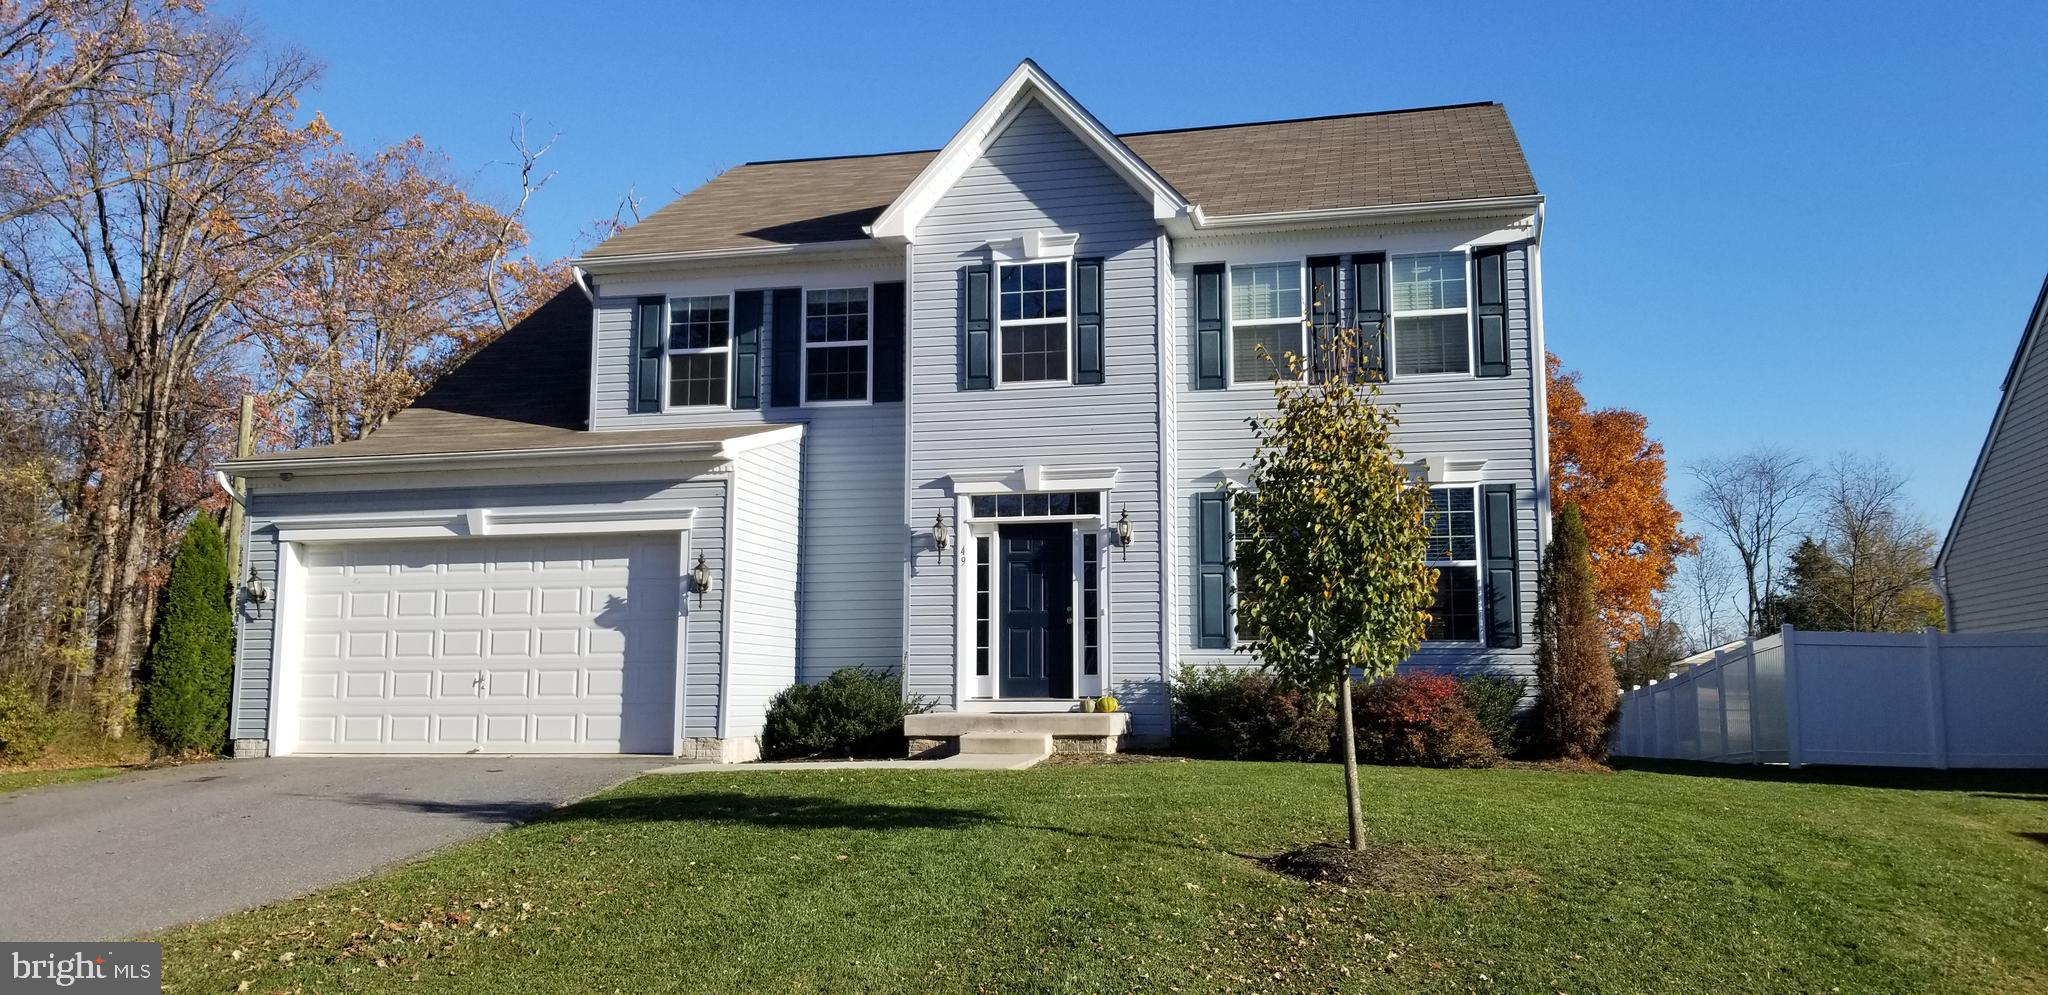 The owners are sad to leave this lovely colonial on a corner lot in Creekside!  Only 5 years young,